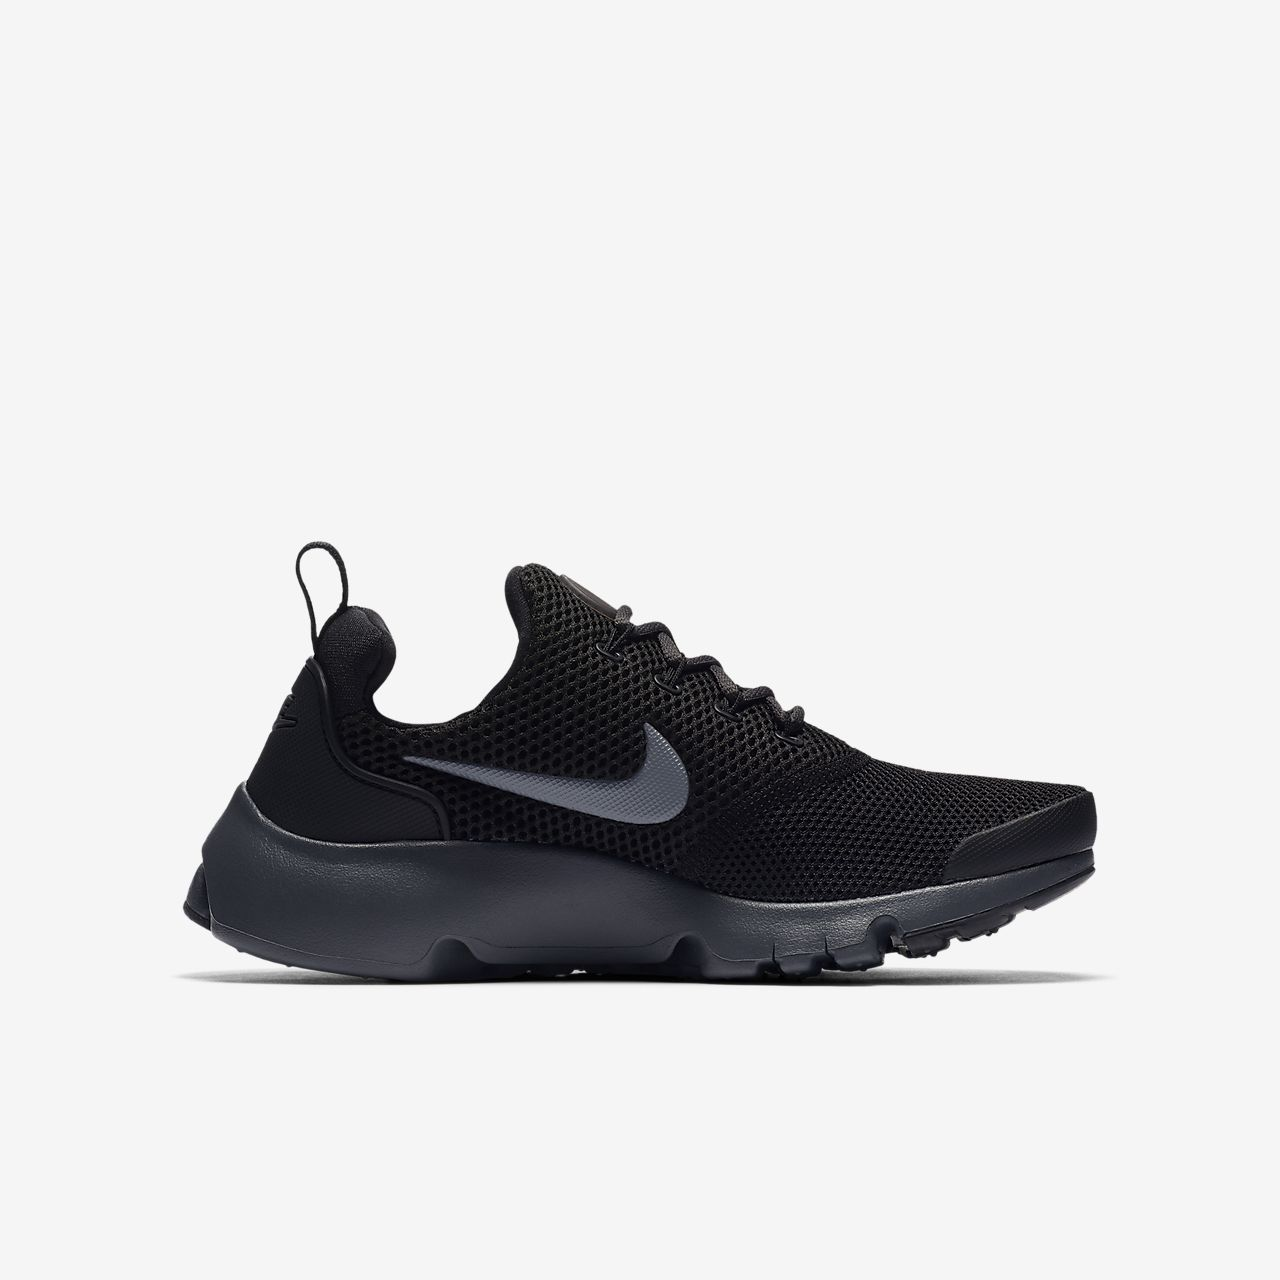 Enfant Chaussure Nike Eulxdyc1 Optr Presto XFqgqHw